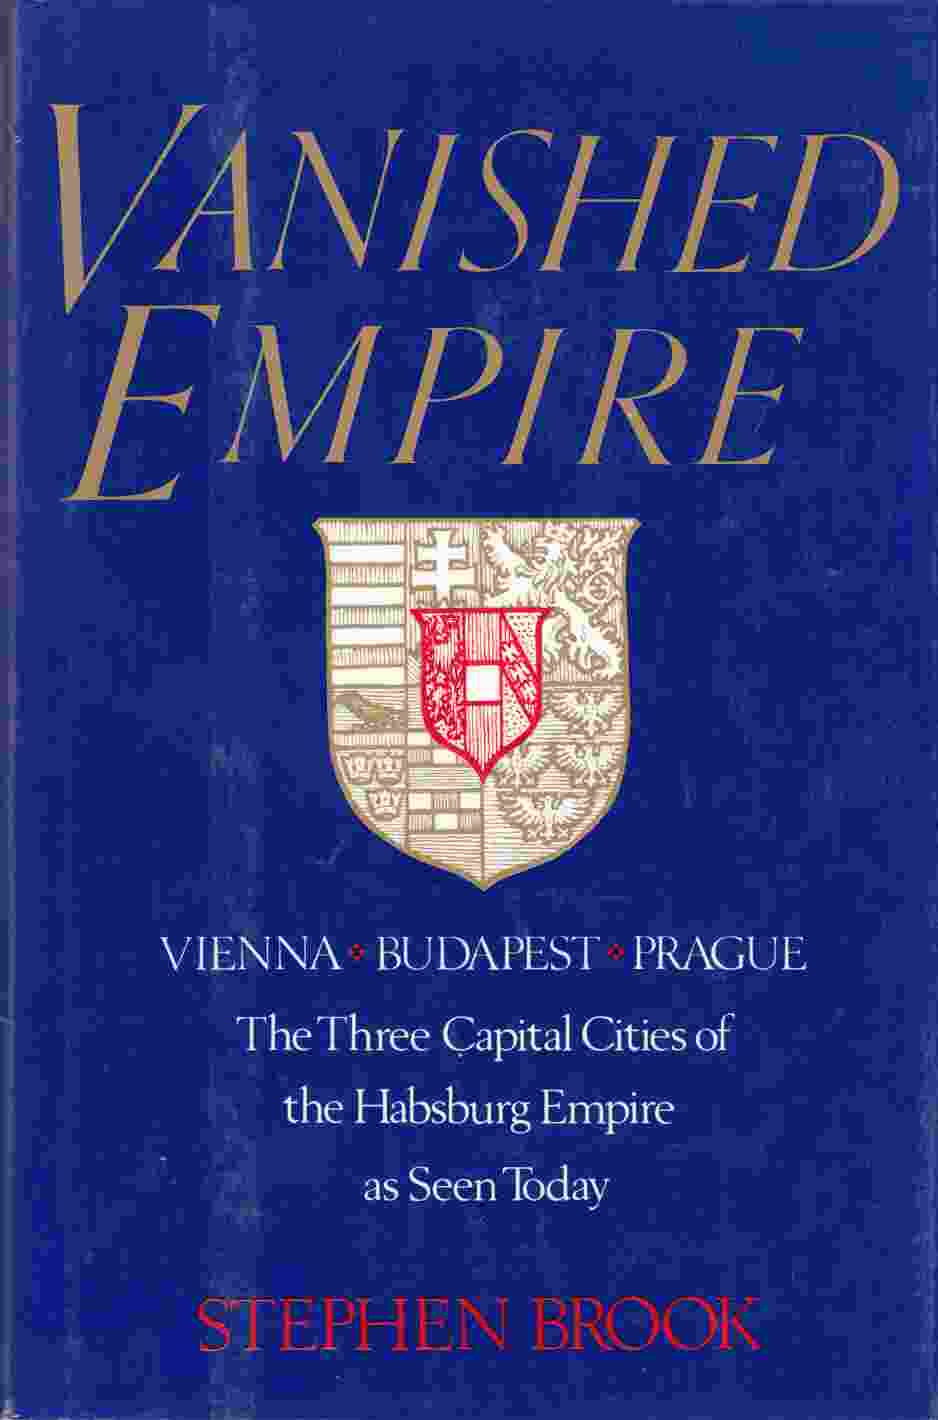 Image for Vanished Empire Vienna, Budapest, Prague: The Three Capital Cities of the Habsburg Empire As Seen Today